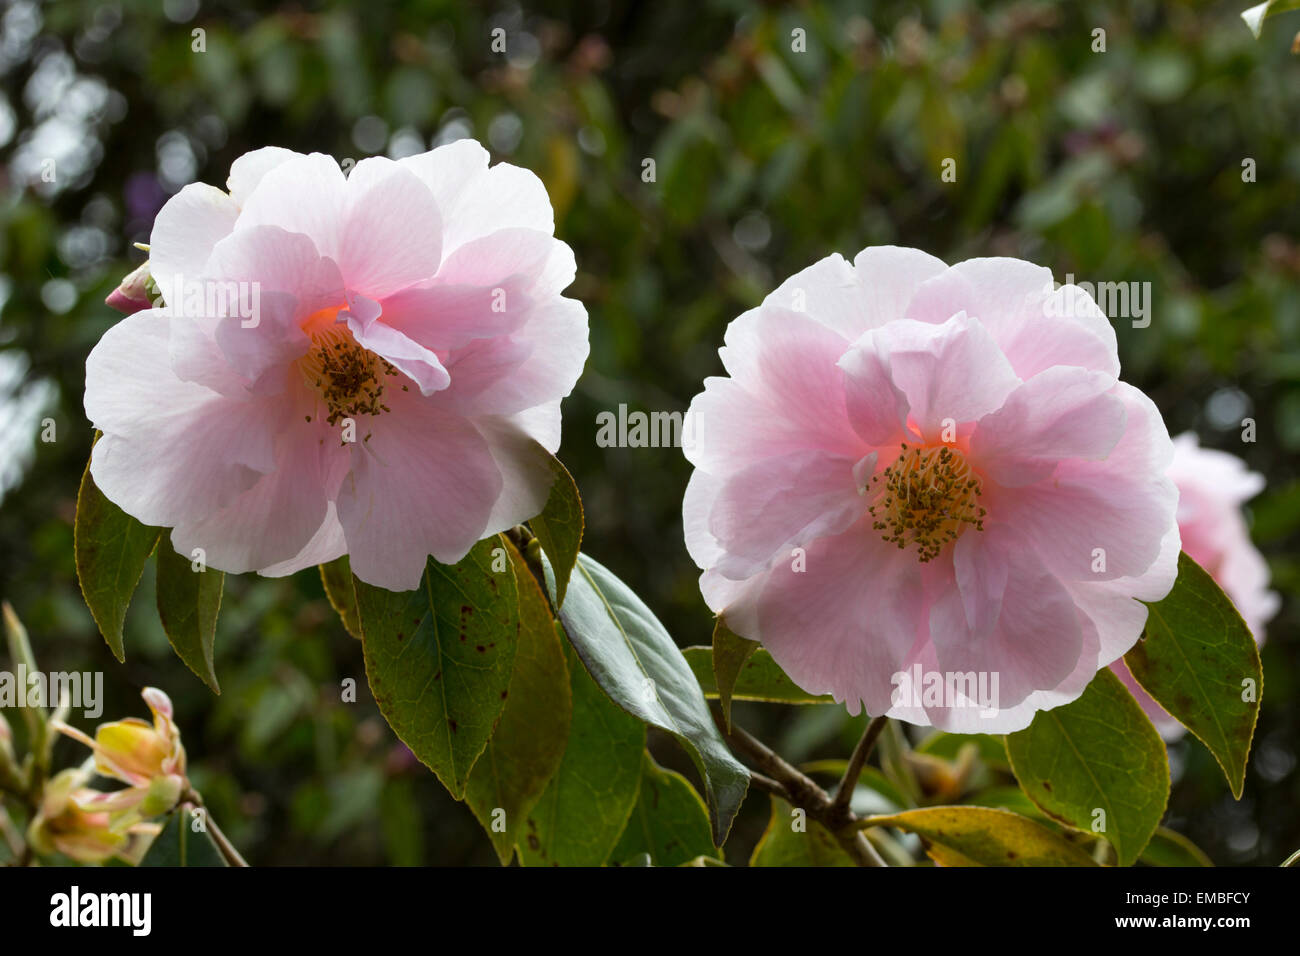 Large pink spring flowers of Camellia reticulata x saluenensis 'Salutation' - Stock Image